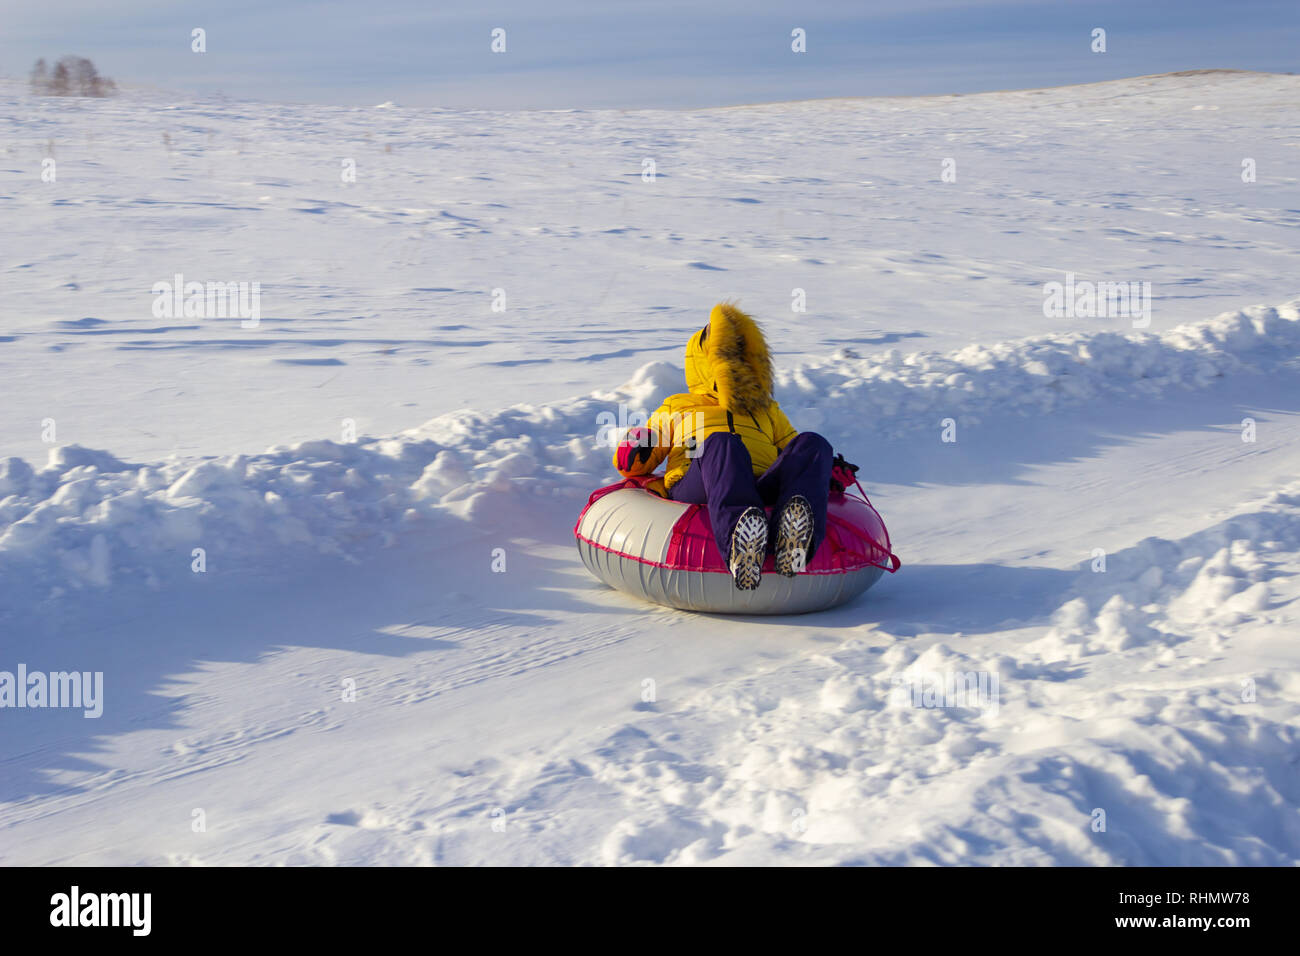 The girl rides a tubing down the snowy road, winter sport. - Stock Image